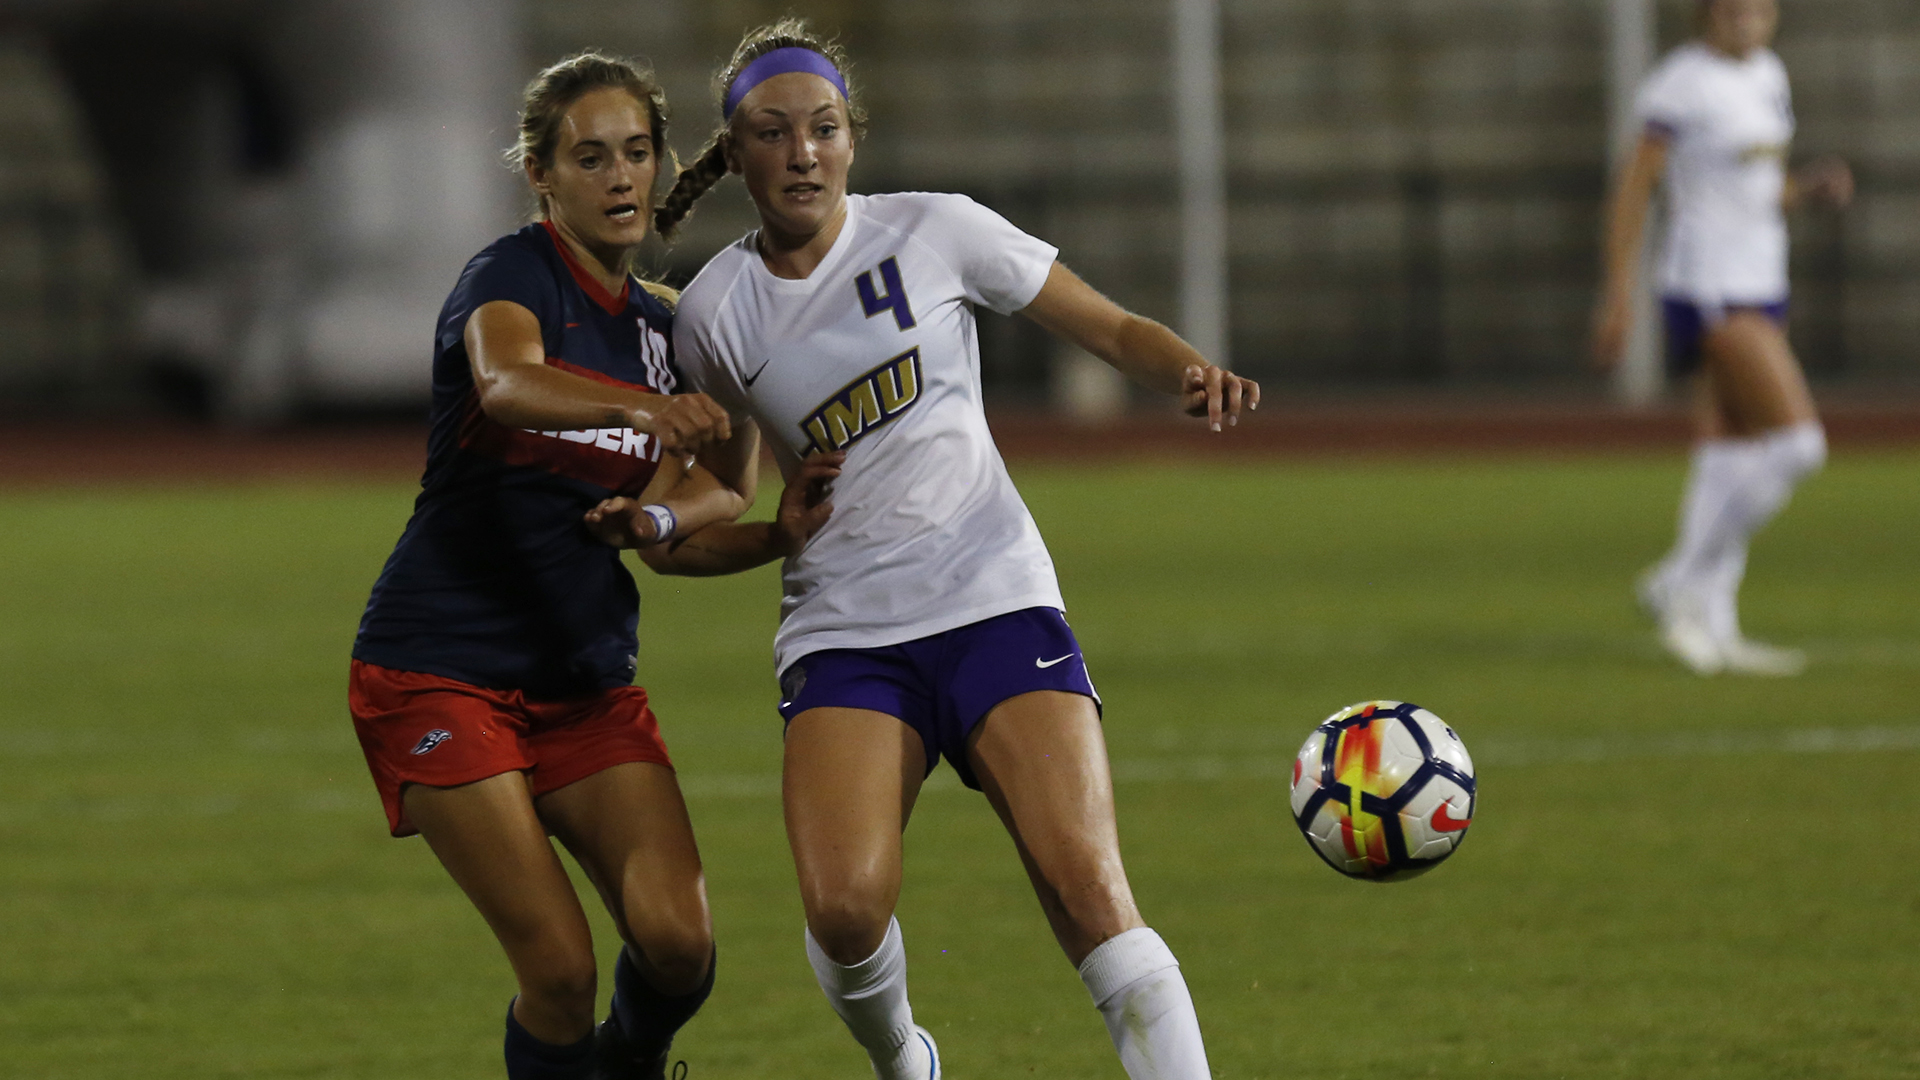 Women's Soccer: Dukes Open CAA Play With 1-0 Win at Drexel